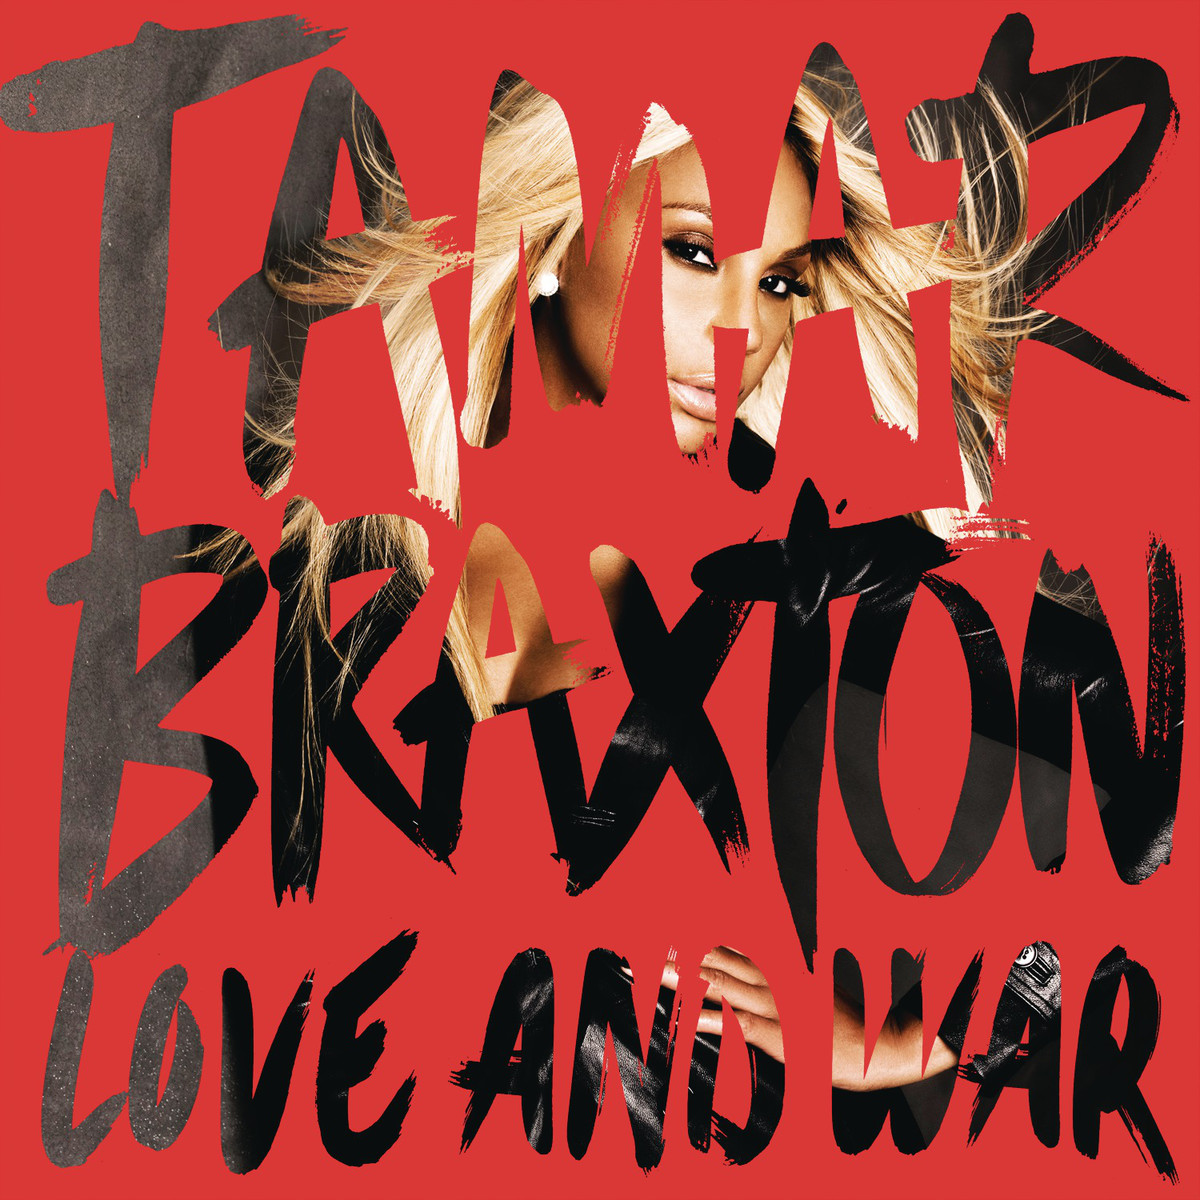 Tamar Braxton Love and War album cover